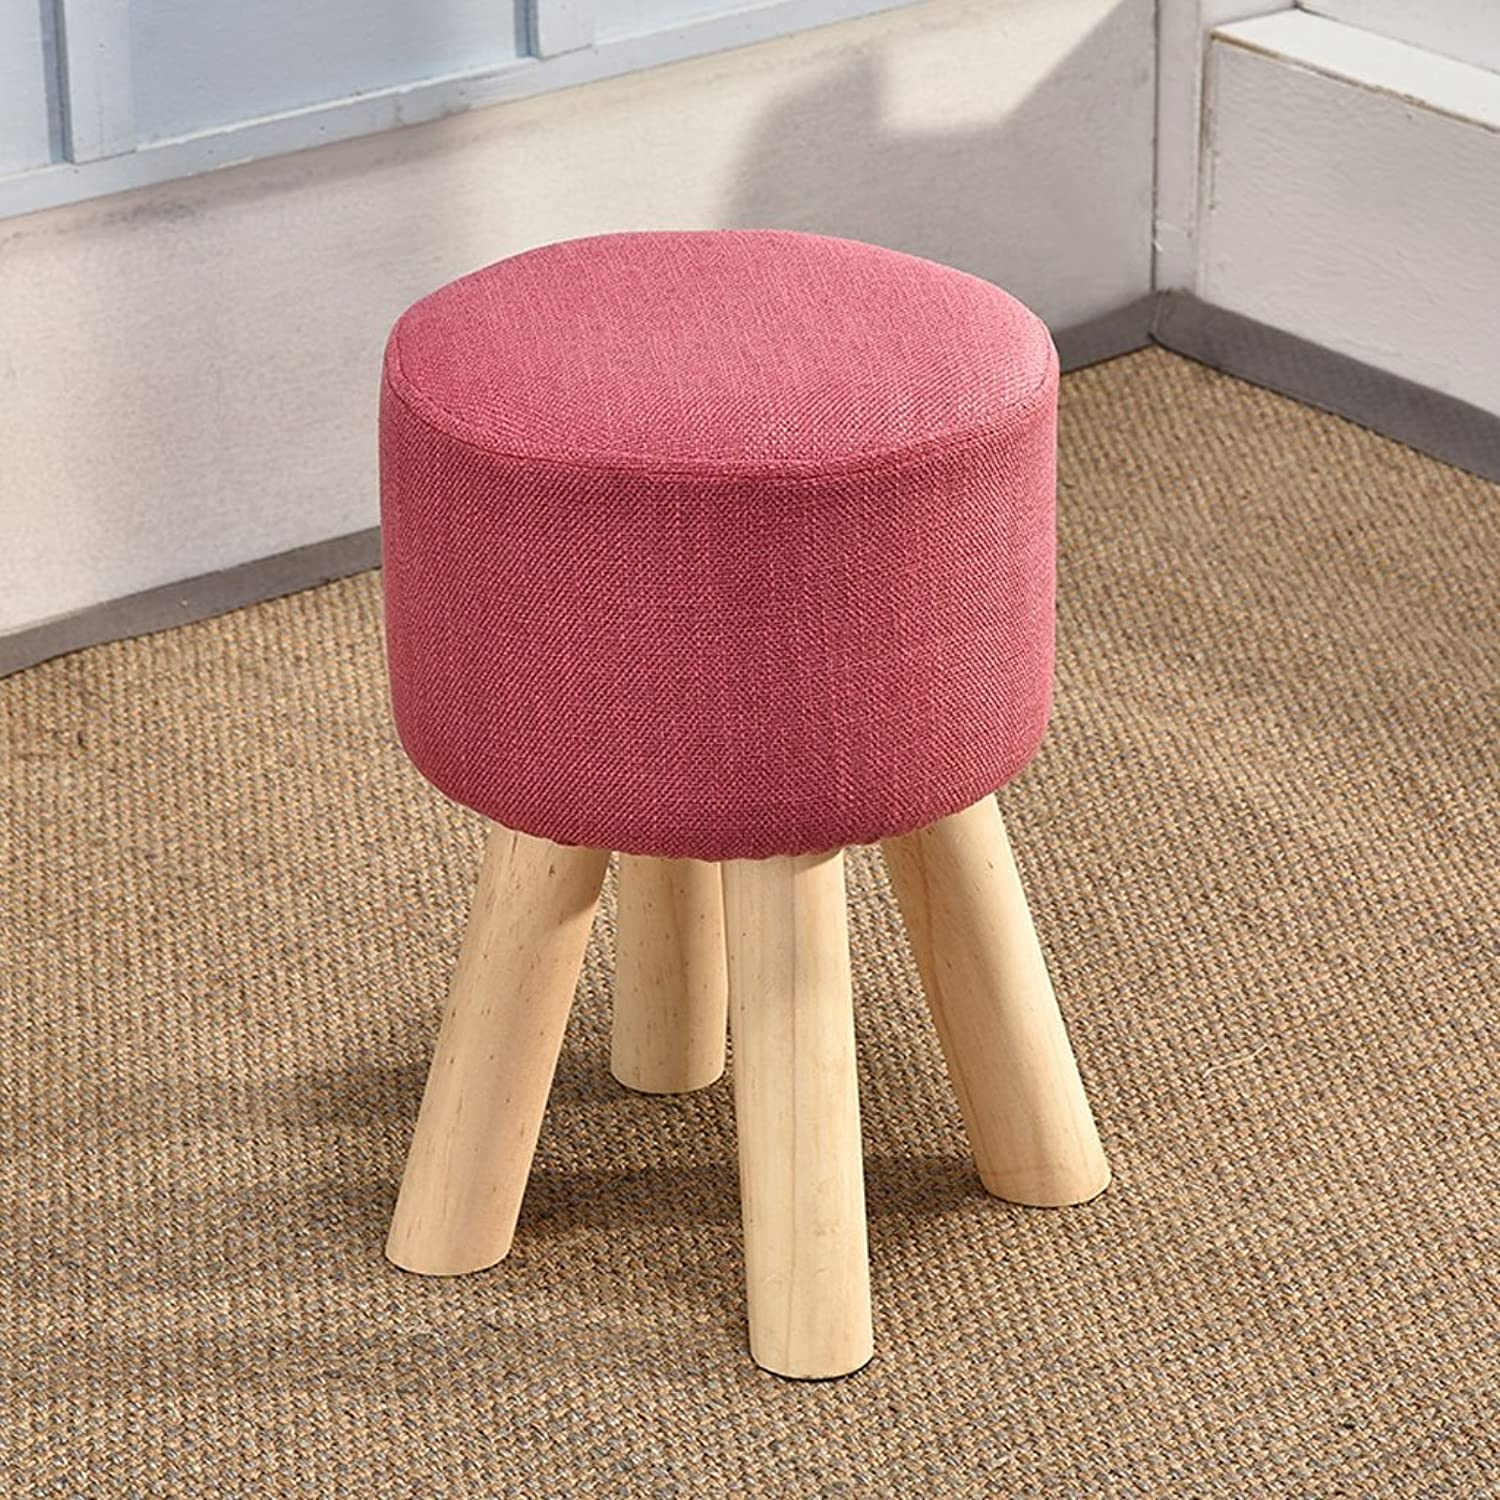 SXHDMY High Chair Living Room shoes Stool Cloth Stool Wood Coffee Table Stool 28x28x40CM Stool (color   pink Red)